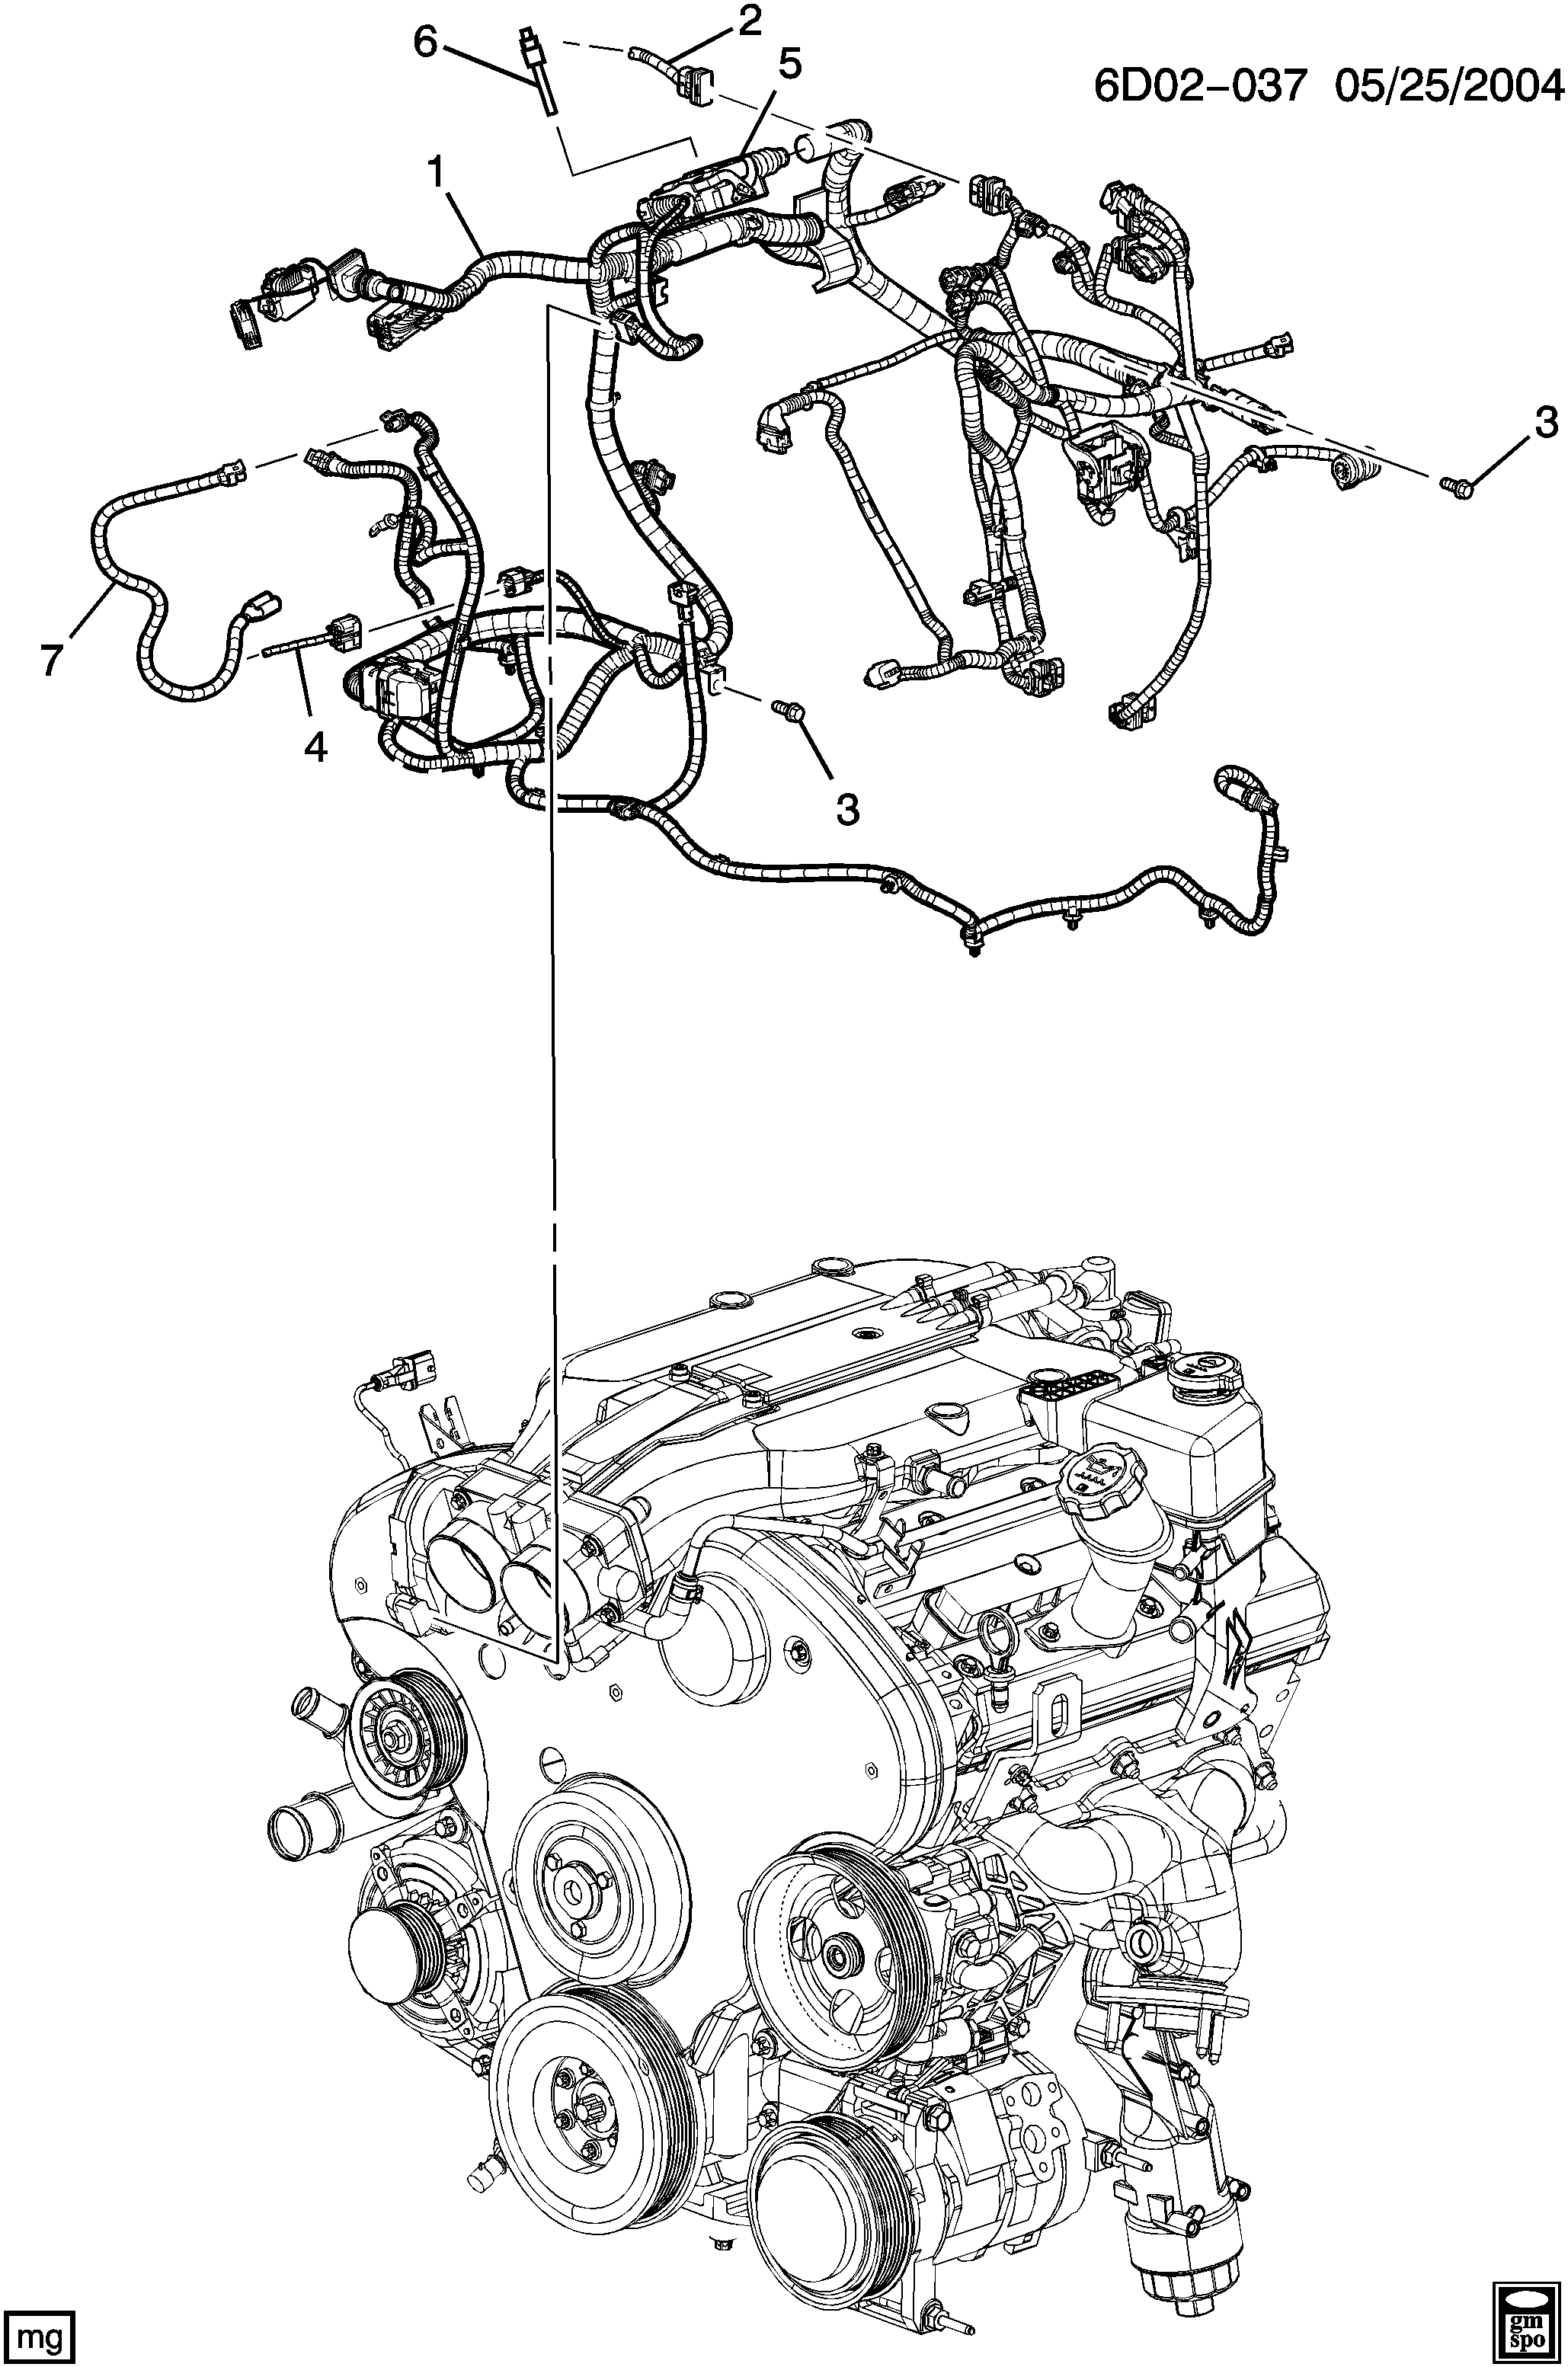 Wiring Diagram For Cadillac Cts